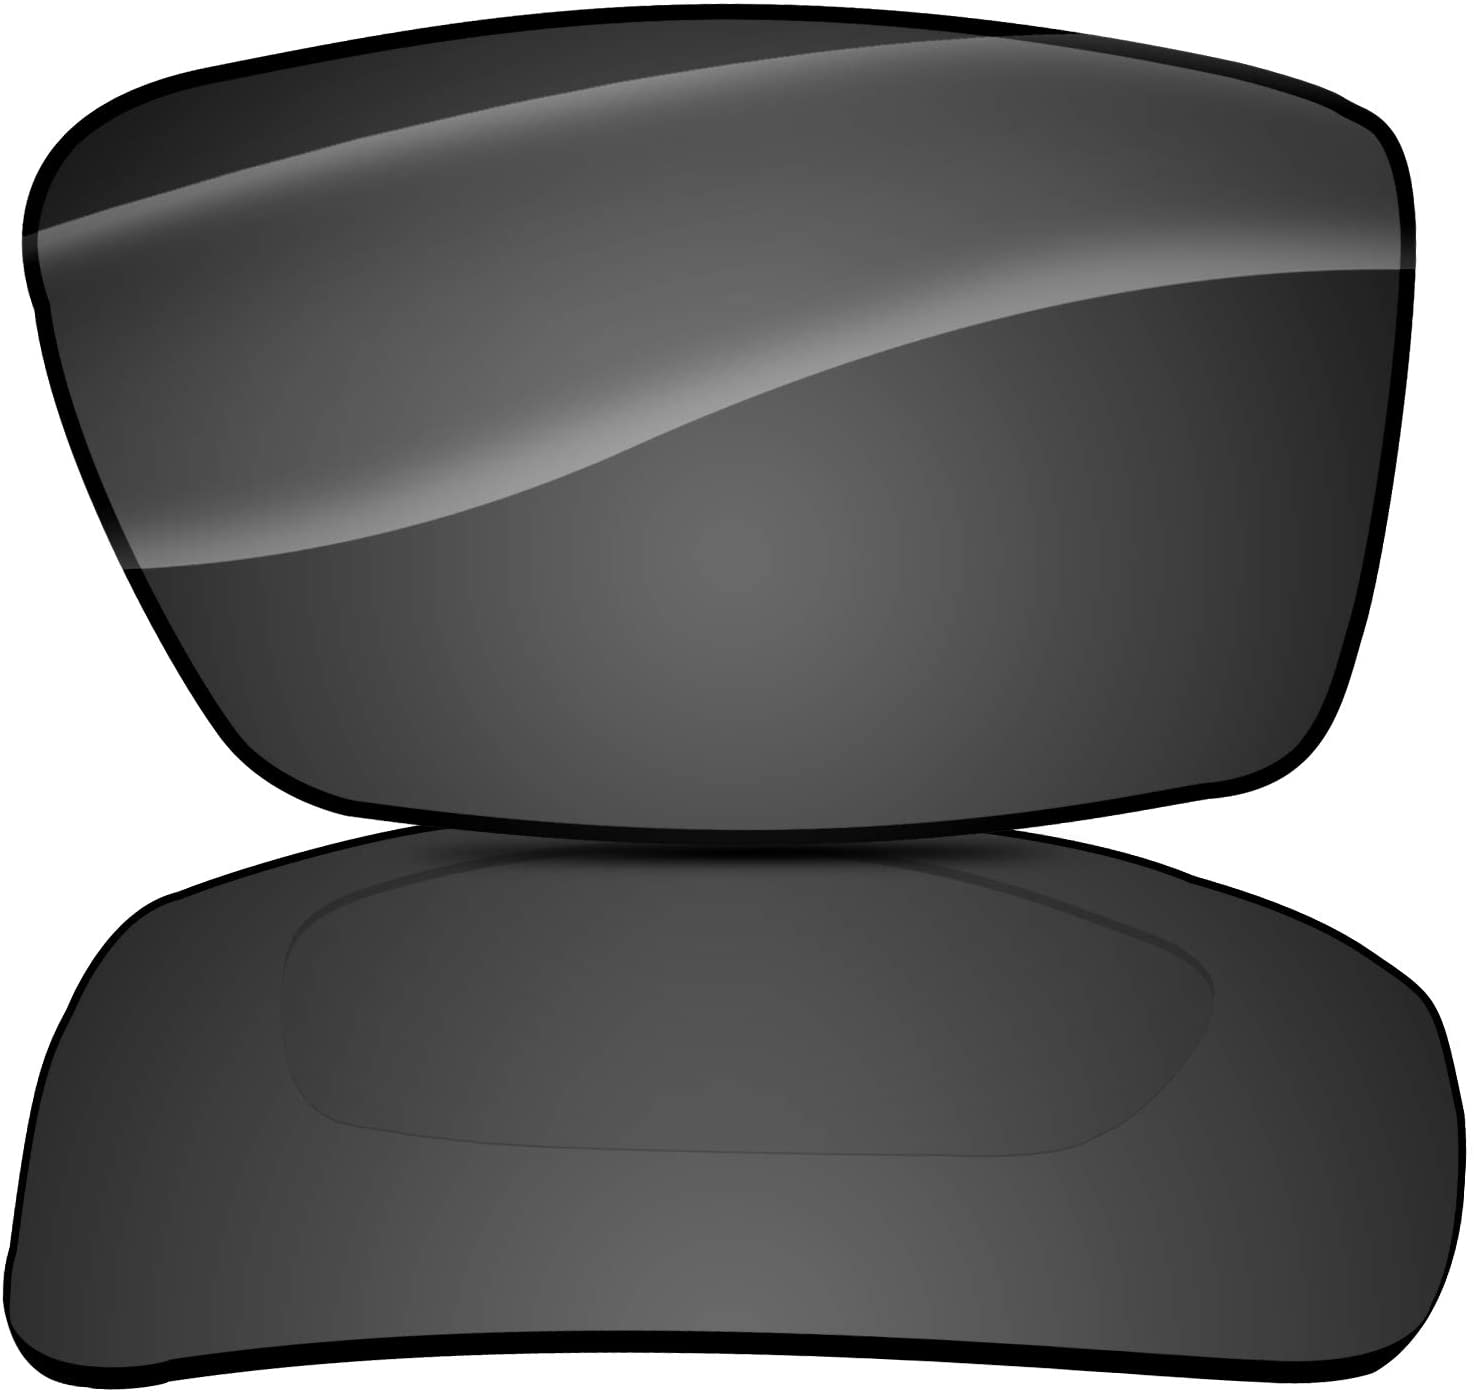 COOLENS Polarized Replacement Lenses for Oakley Canteen 2006 Sunglasses UV Protection